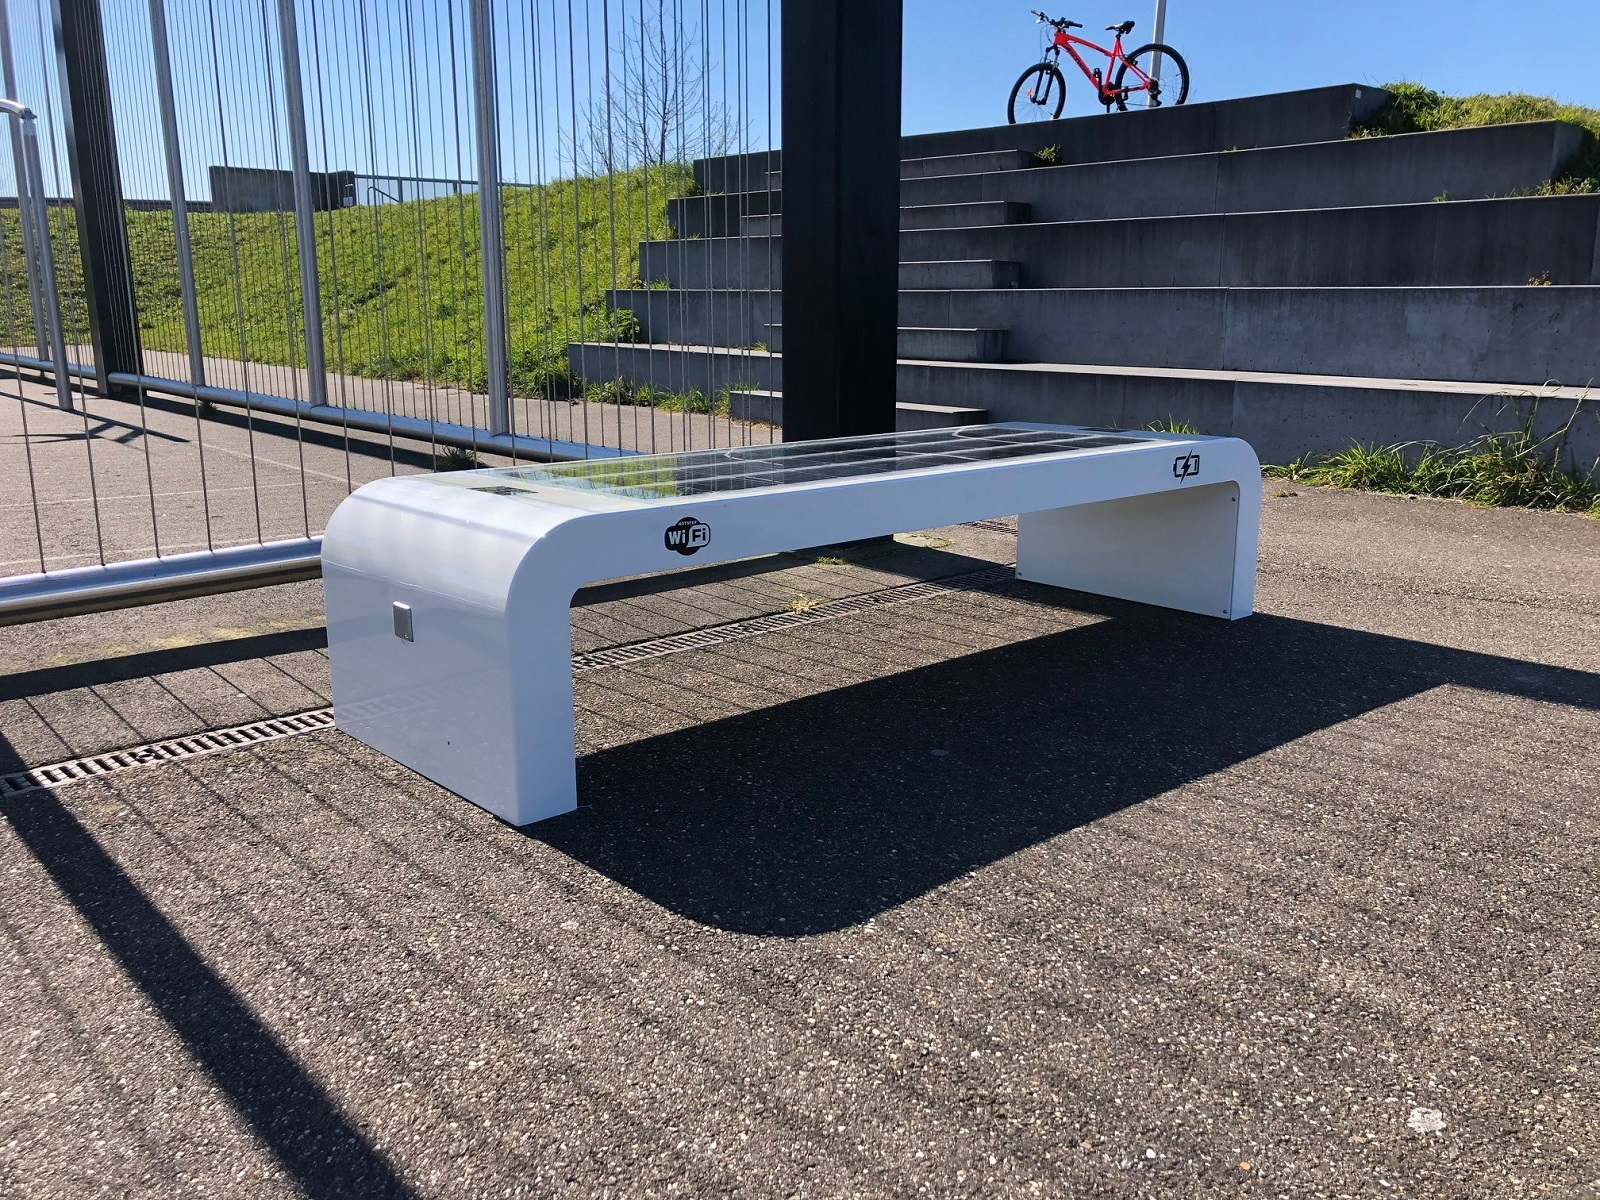 Solar bench WiFi4EU